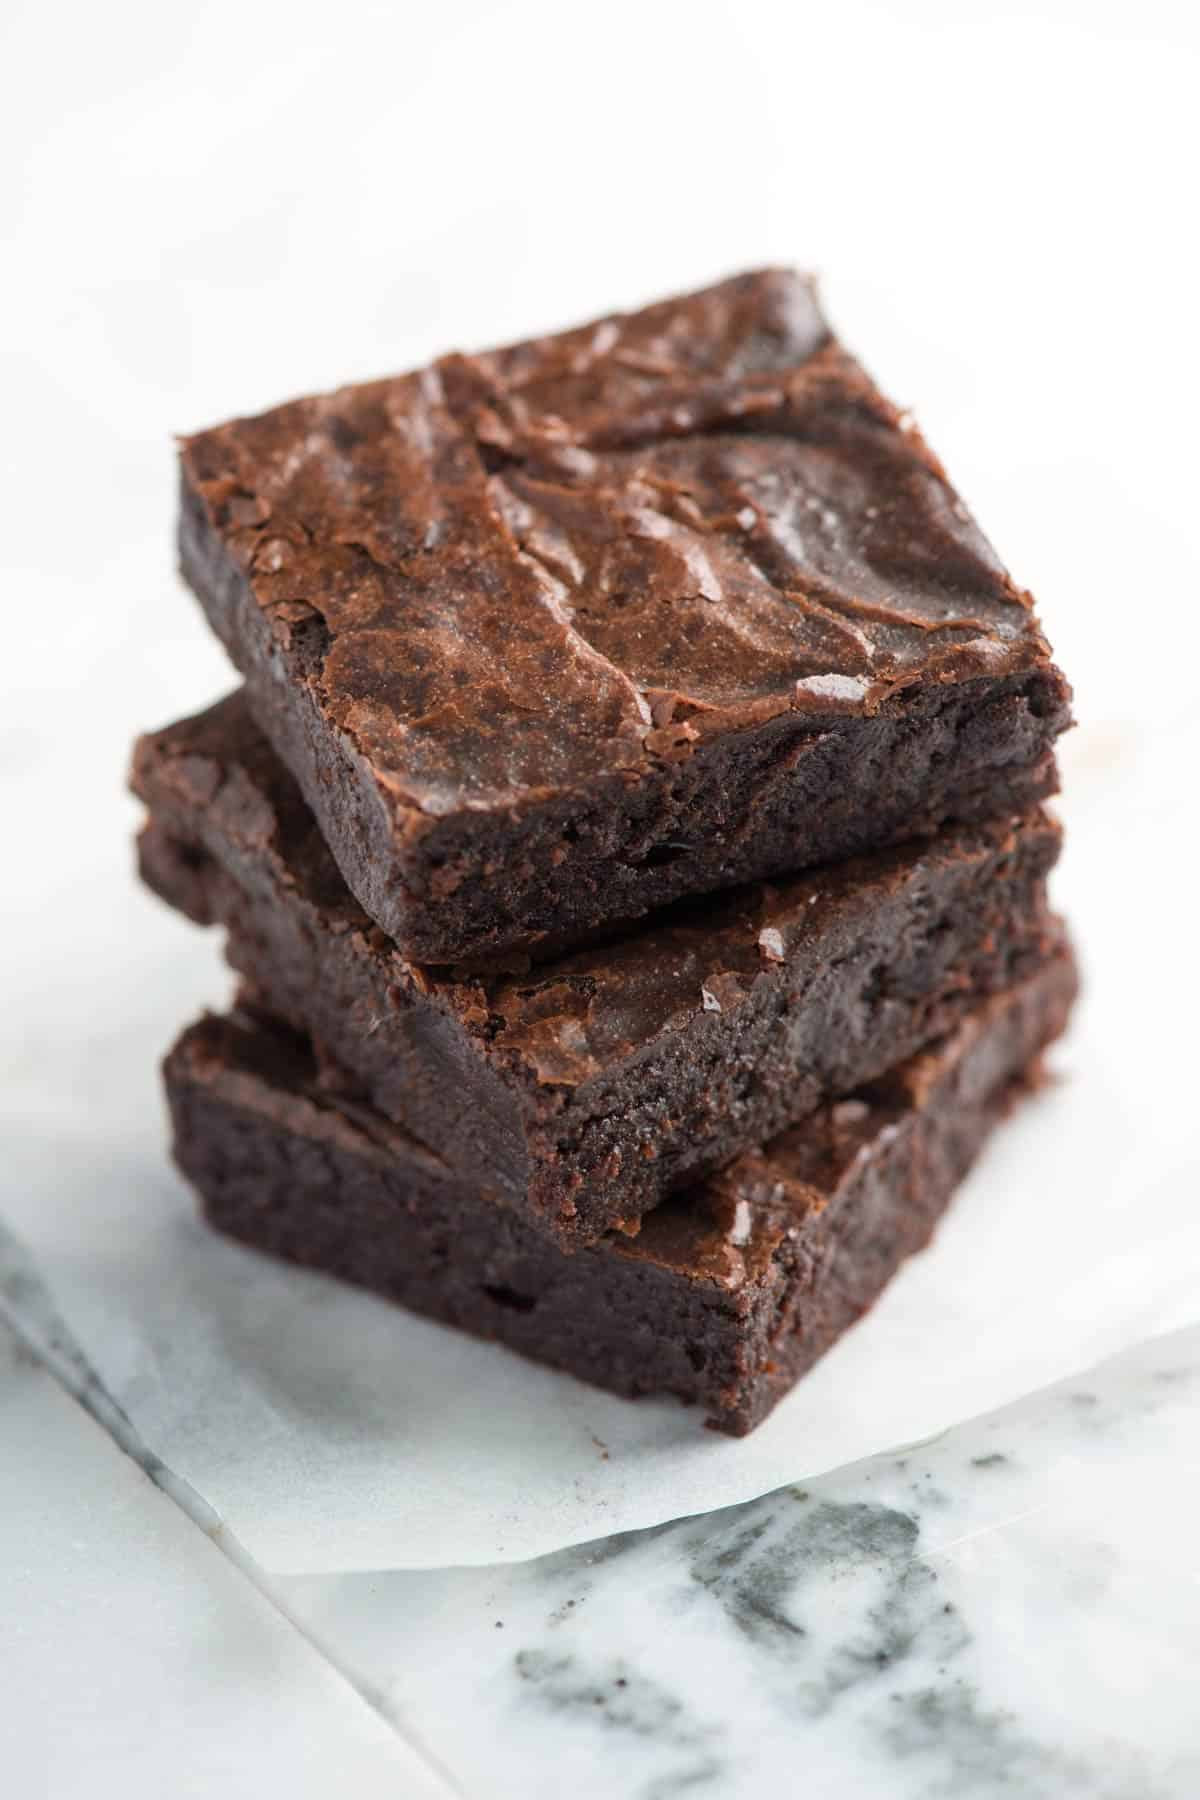 How to Make Brownies from Scratch